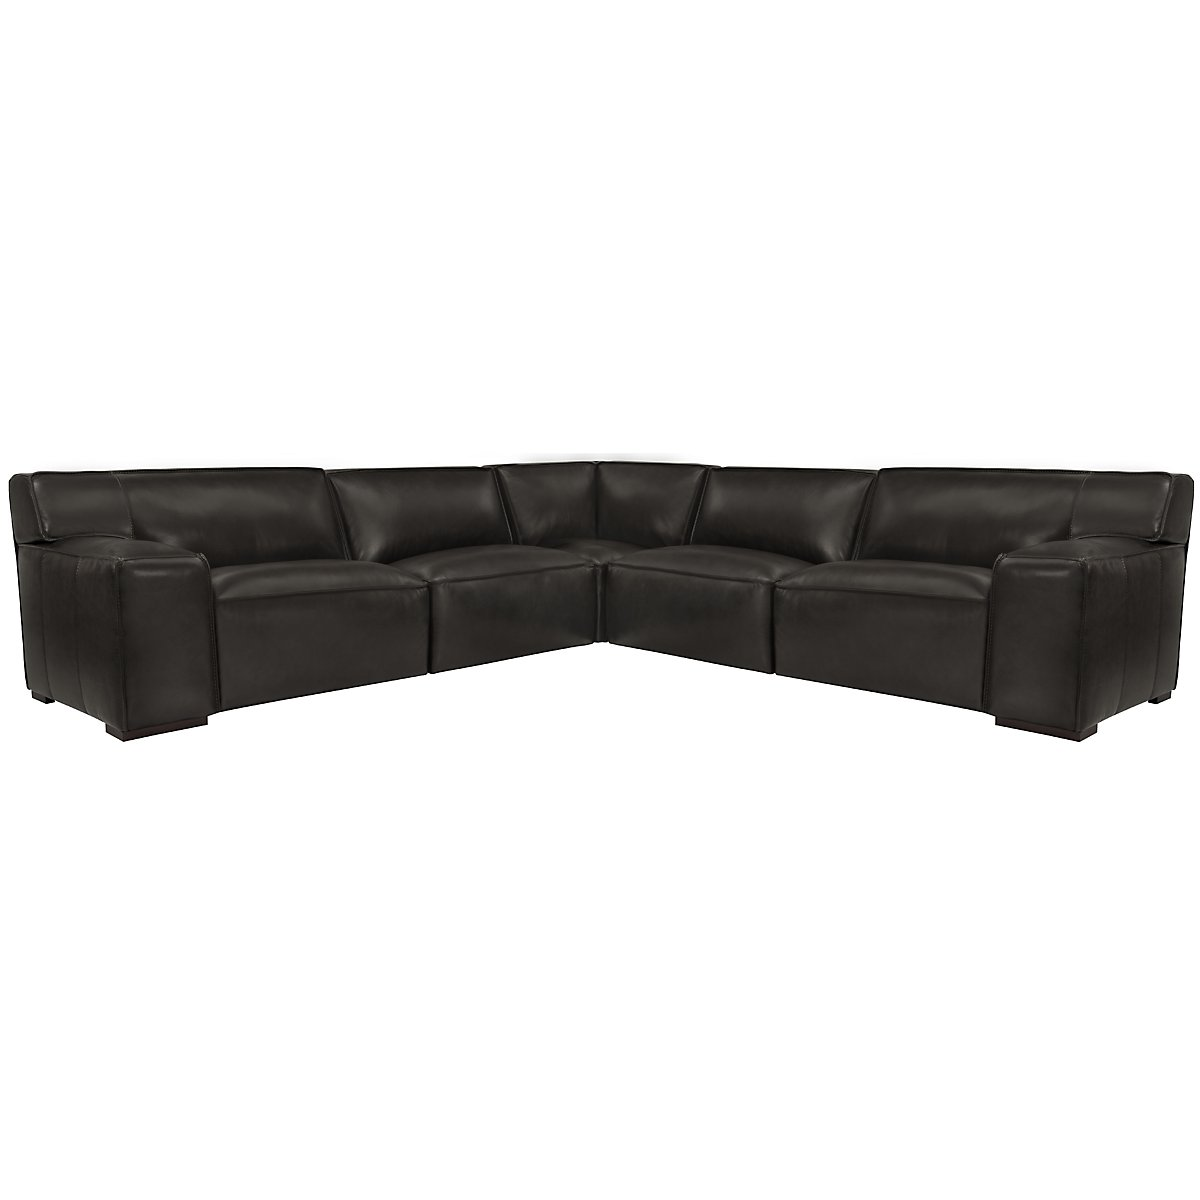 Asher Dk Gray Leather & Vinyl Large Two-Arm Sectional